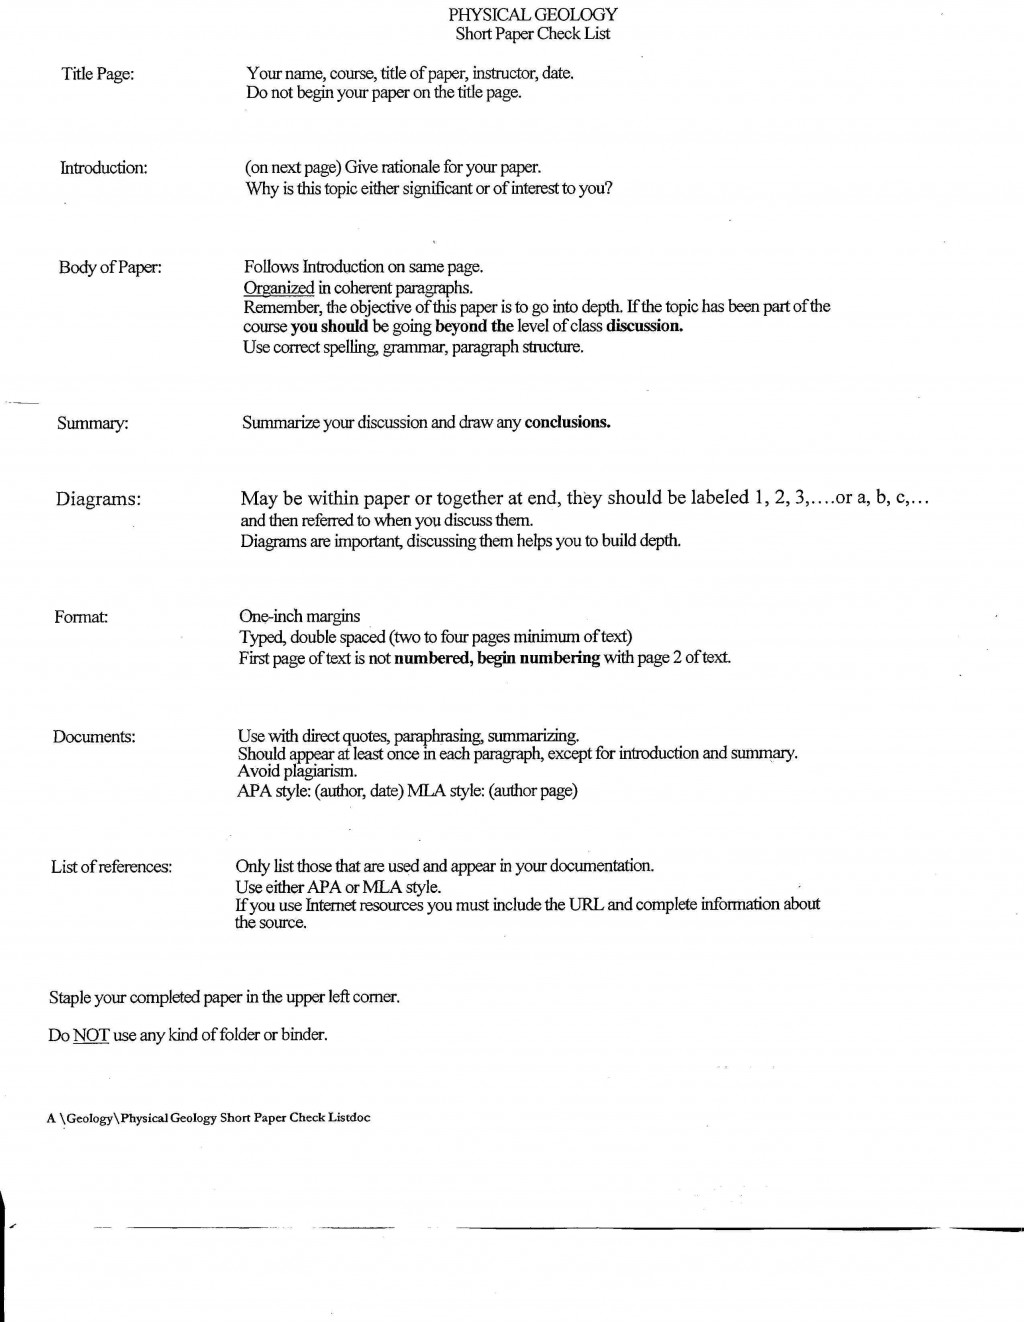 003 Research Paper Short Checklist Interesting Topics For Rare College Students In The Philippines History Technology Large